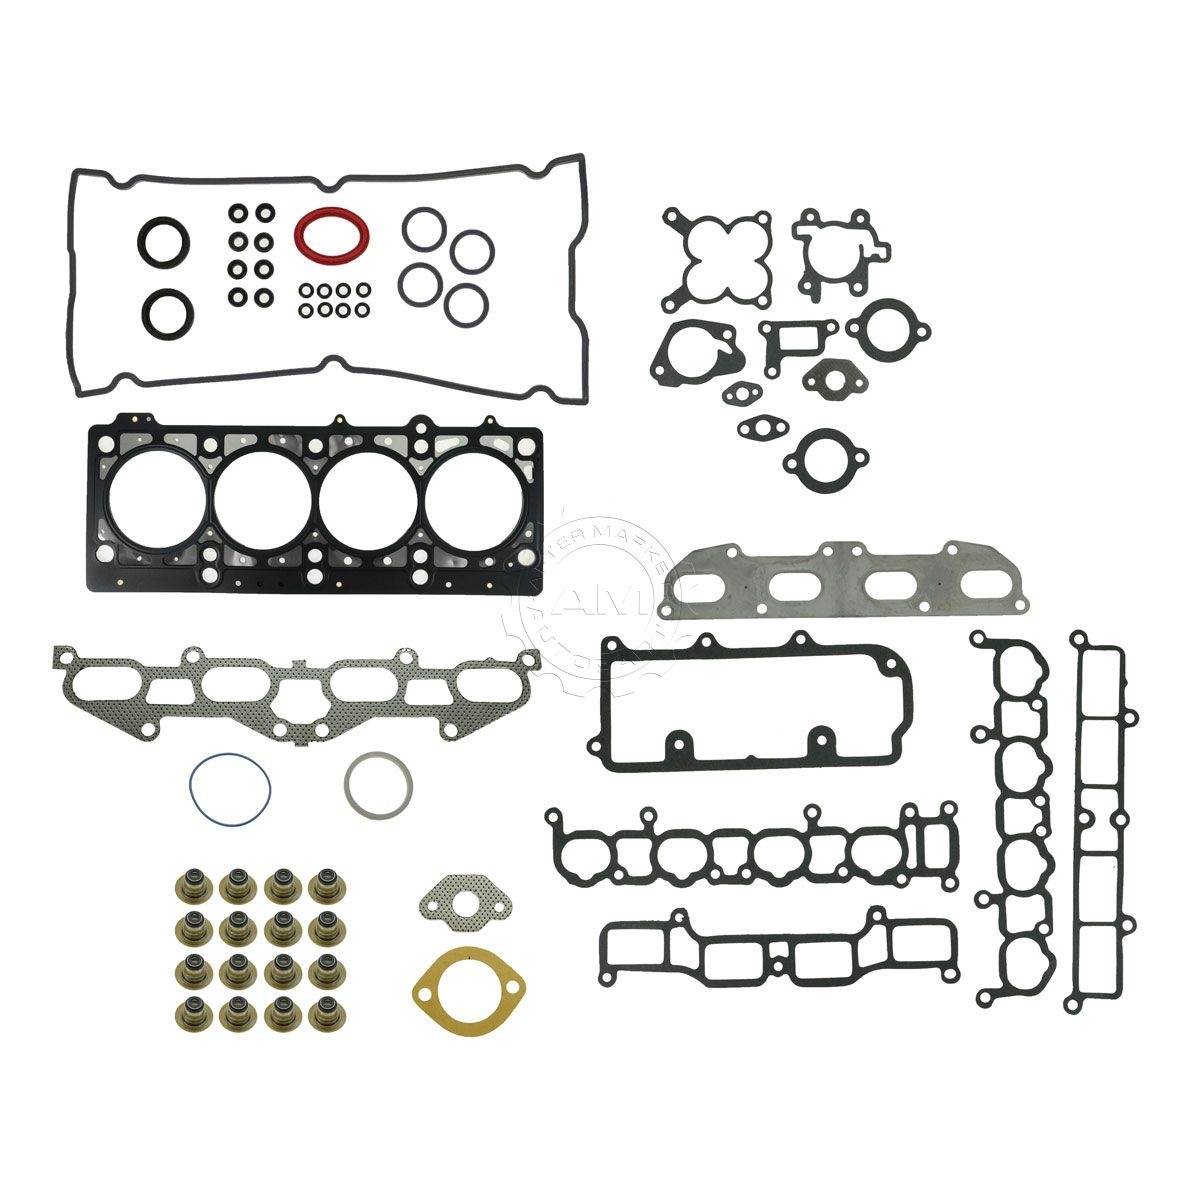 Cylinder Head Gasket Set Kit for Stratus Caravan Voyager